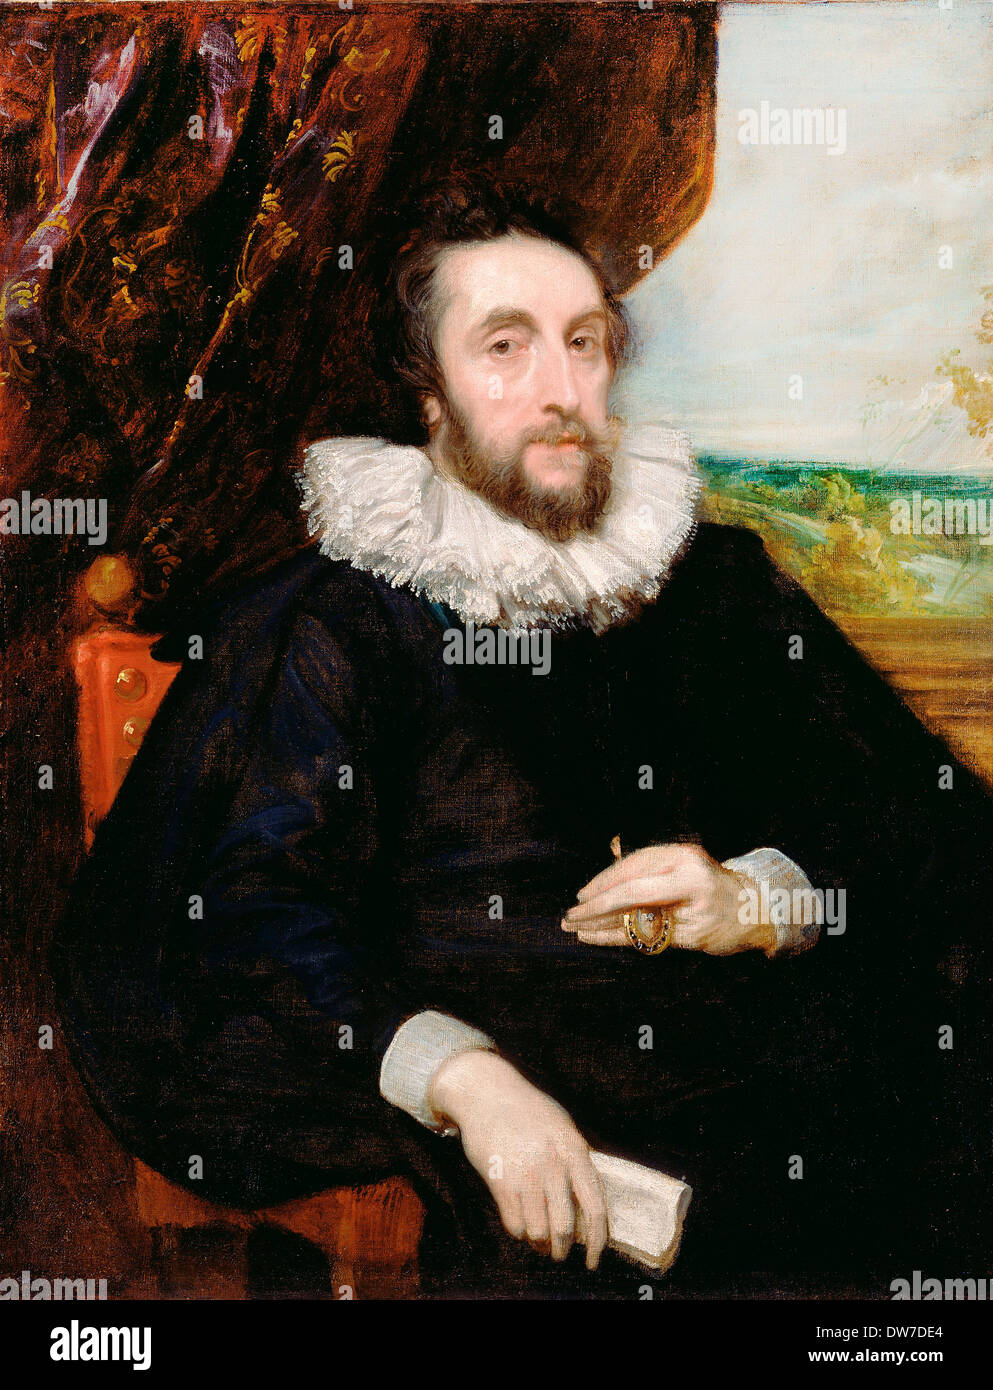 Anthony van Dyck, Thomas Howard, 21st Earl of Arundel 1620-1621 Oil on canvas. J. Paul Getty Museum, Los Angeles. - Stock Image